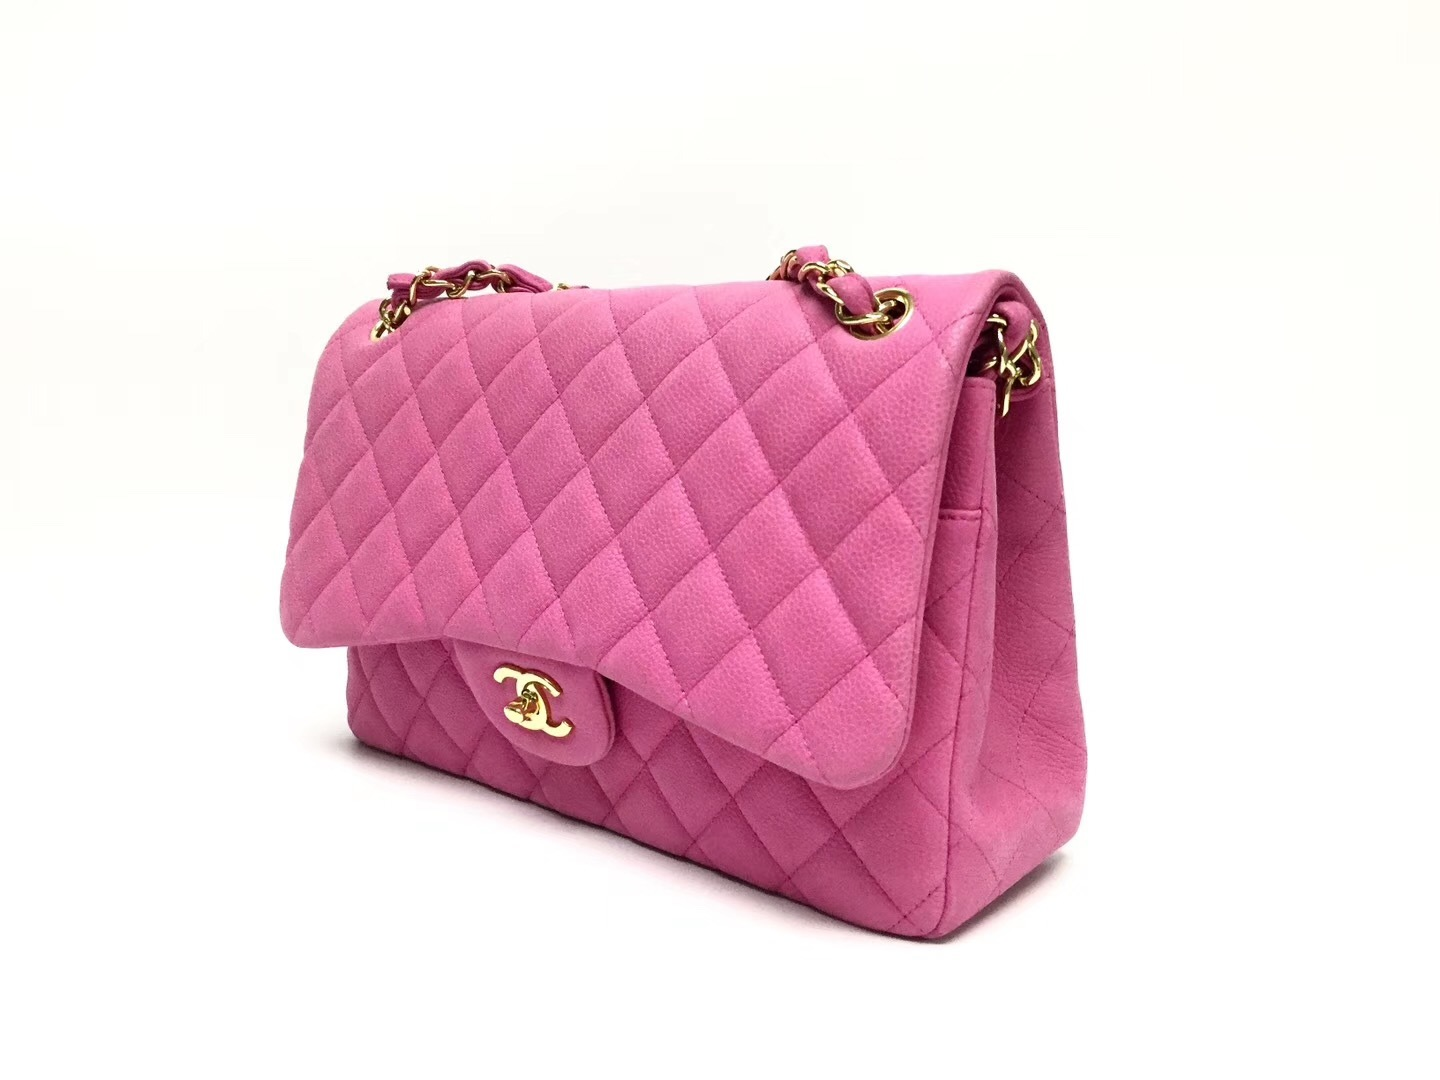 AUTHENTIC CHANEL PINK QUILTED CAVIAR JUMBO CLASSIC DOUBLE FLAP BAG GHW